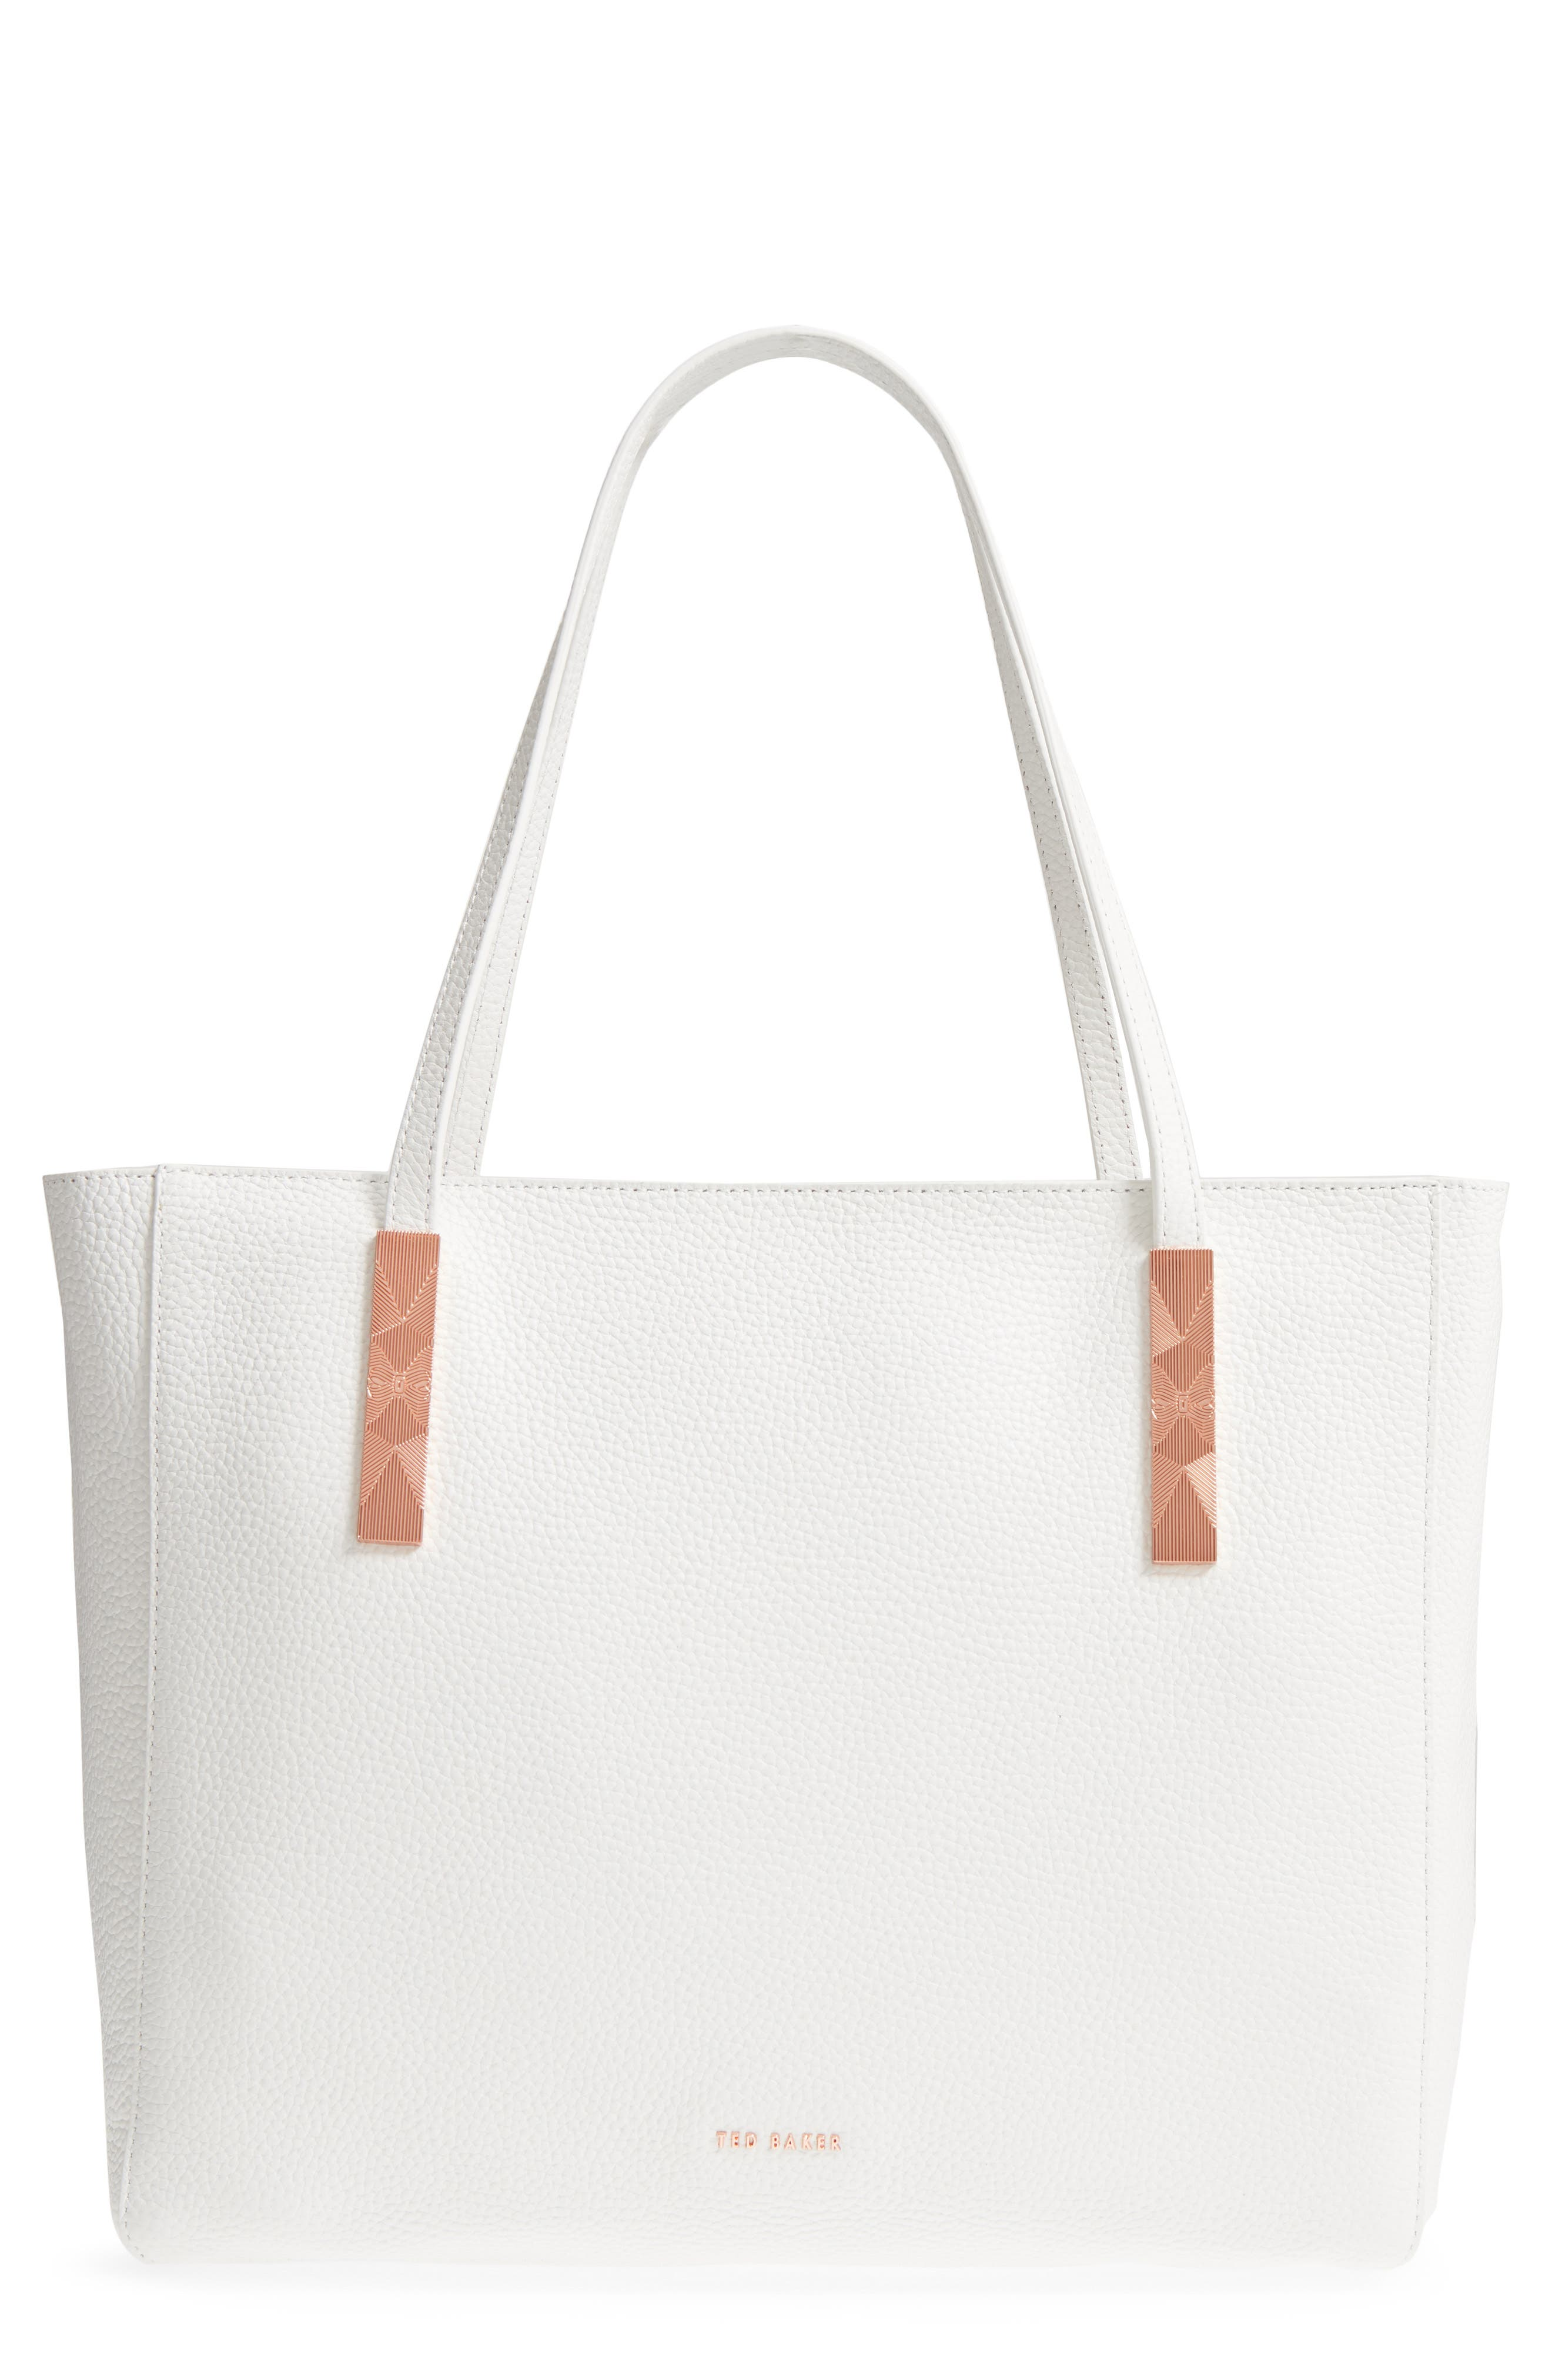 TED BAKER LONDON Pebbled Leather Tote, Main, color, 110